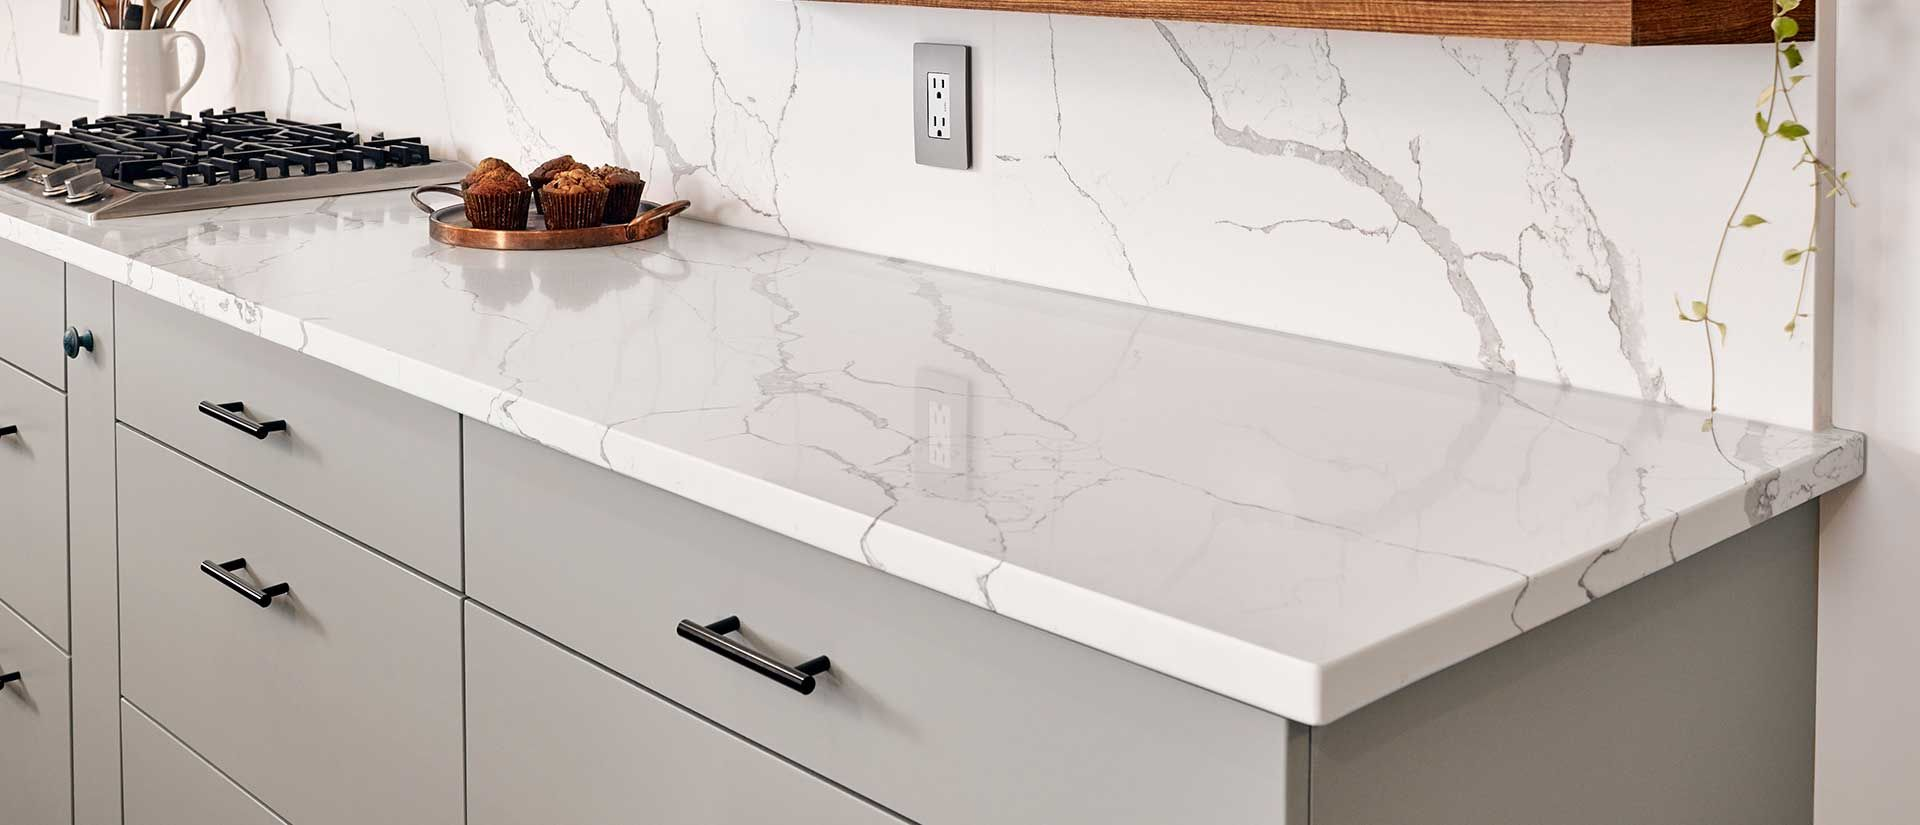 This Calcutta Laza Quartz By Msi Looks Outstanding With Our Re